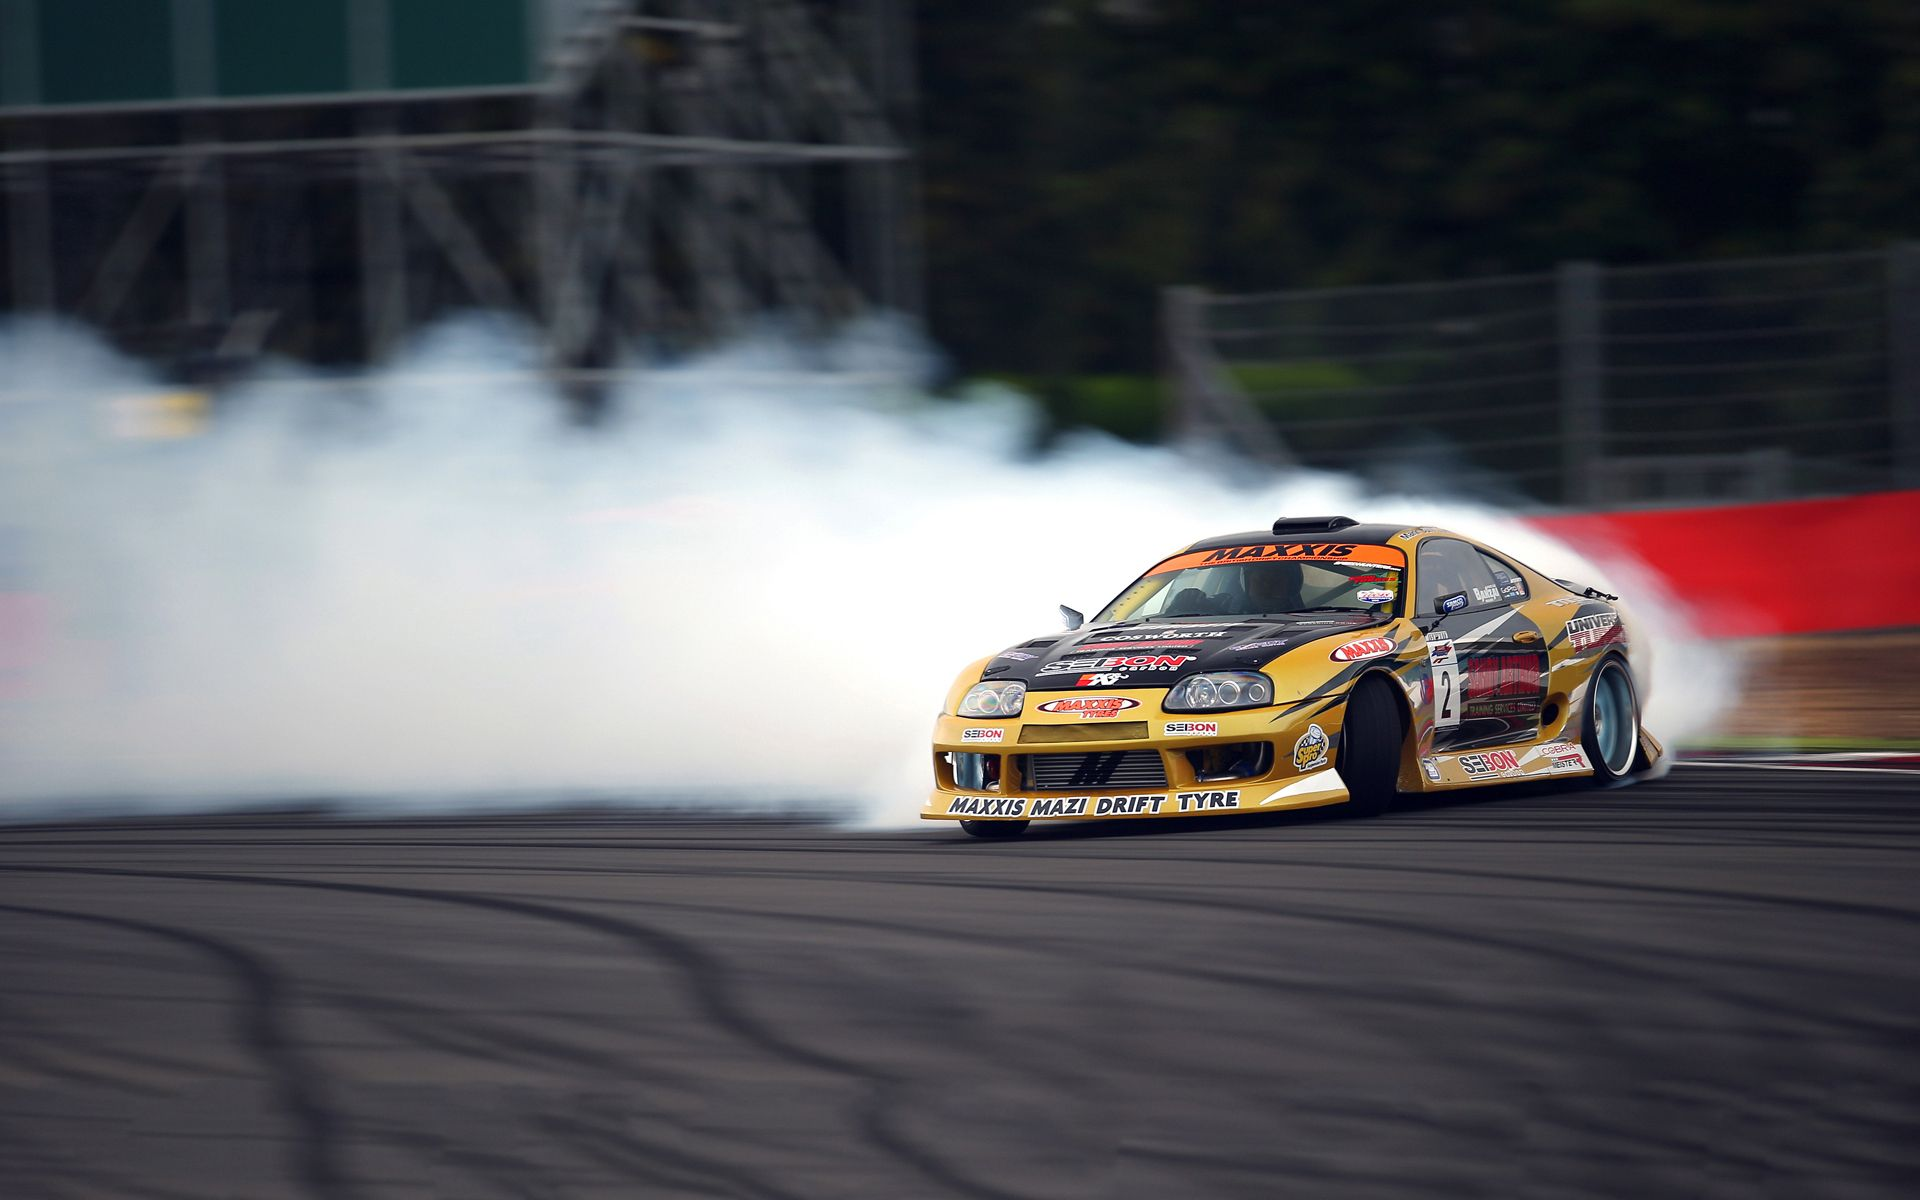 Supra Drift Wallpaper For Mac Vzz With Images Toyota Supra